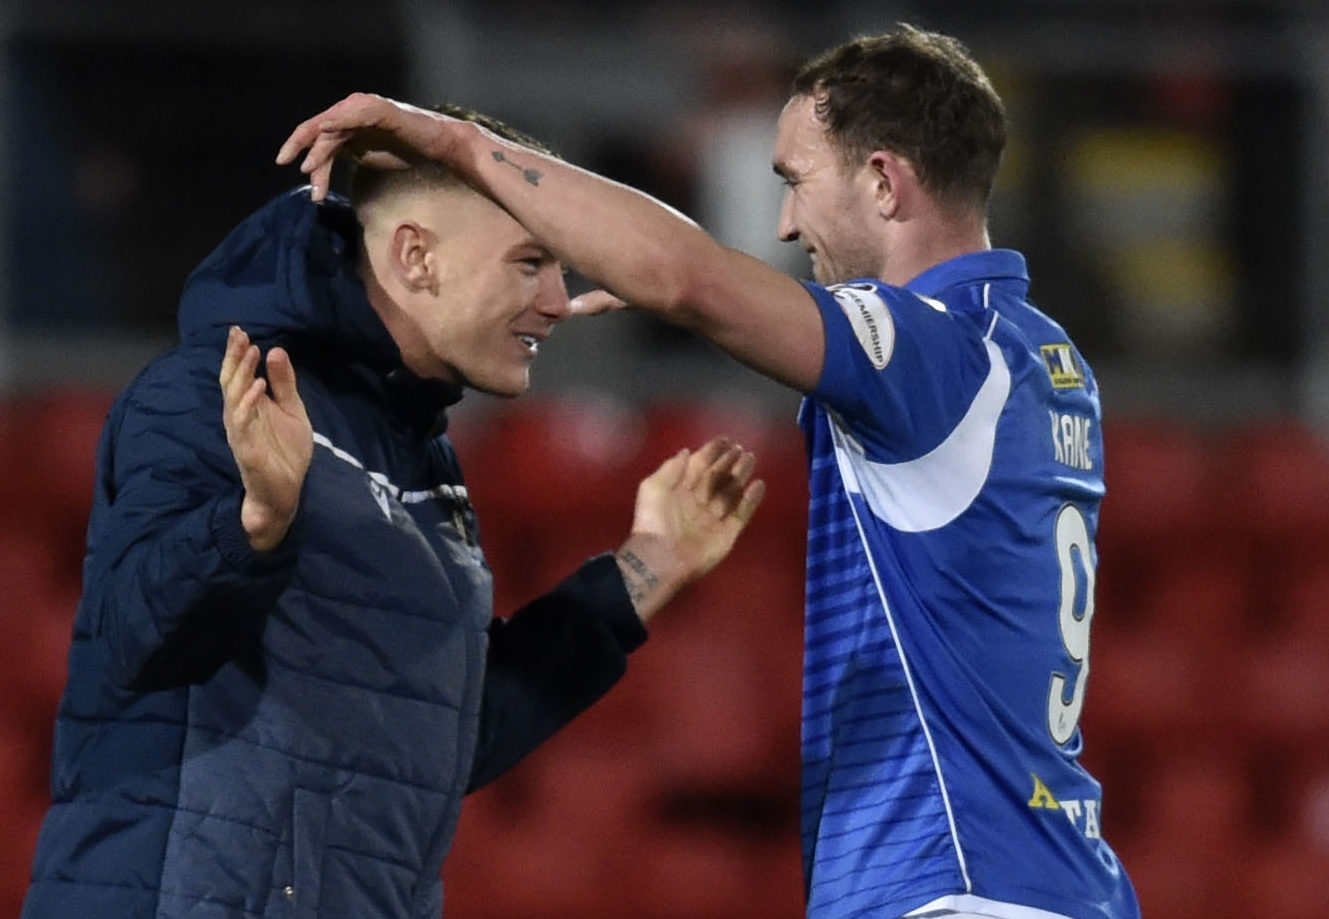 The two goalscorers against Motherwell celebrate at full-time.